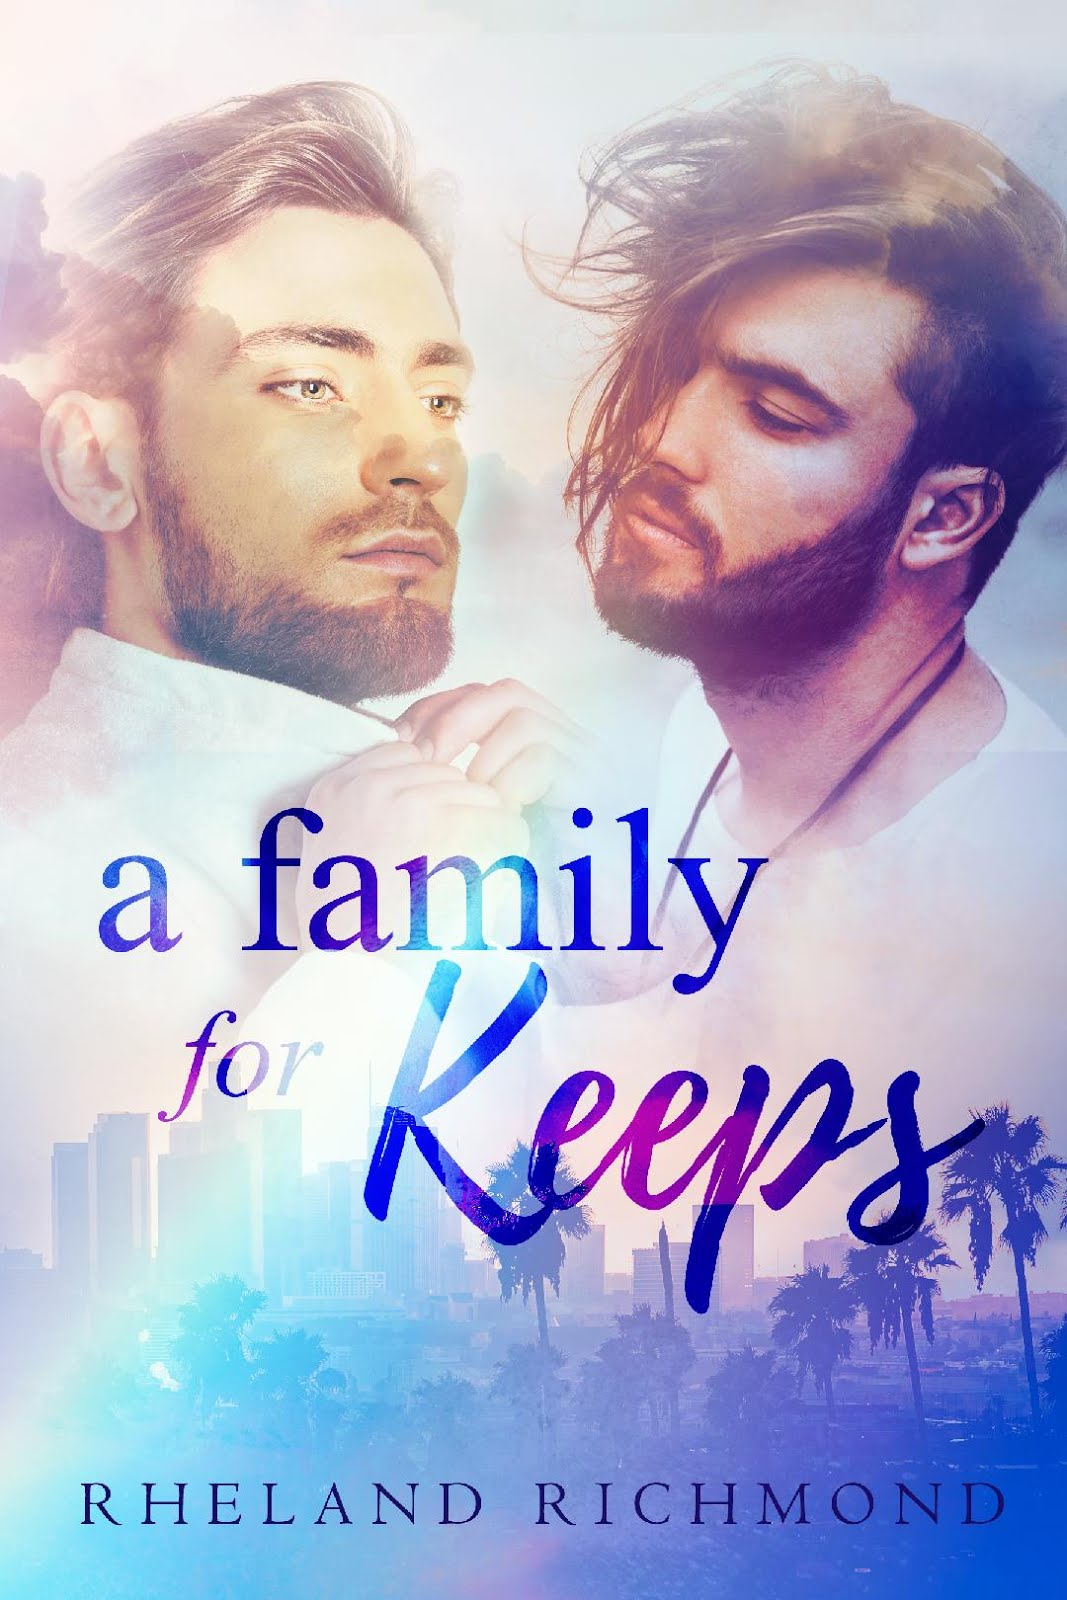 A Family For Keeps by Rheland Richmond